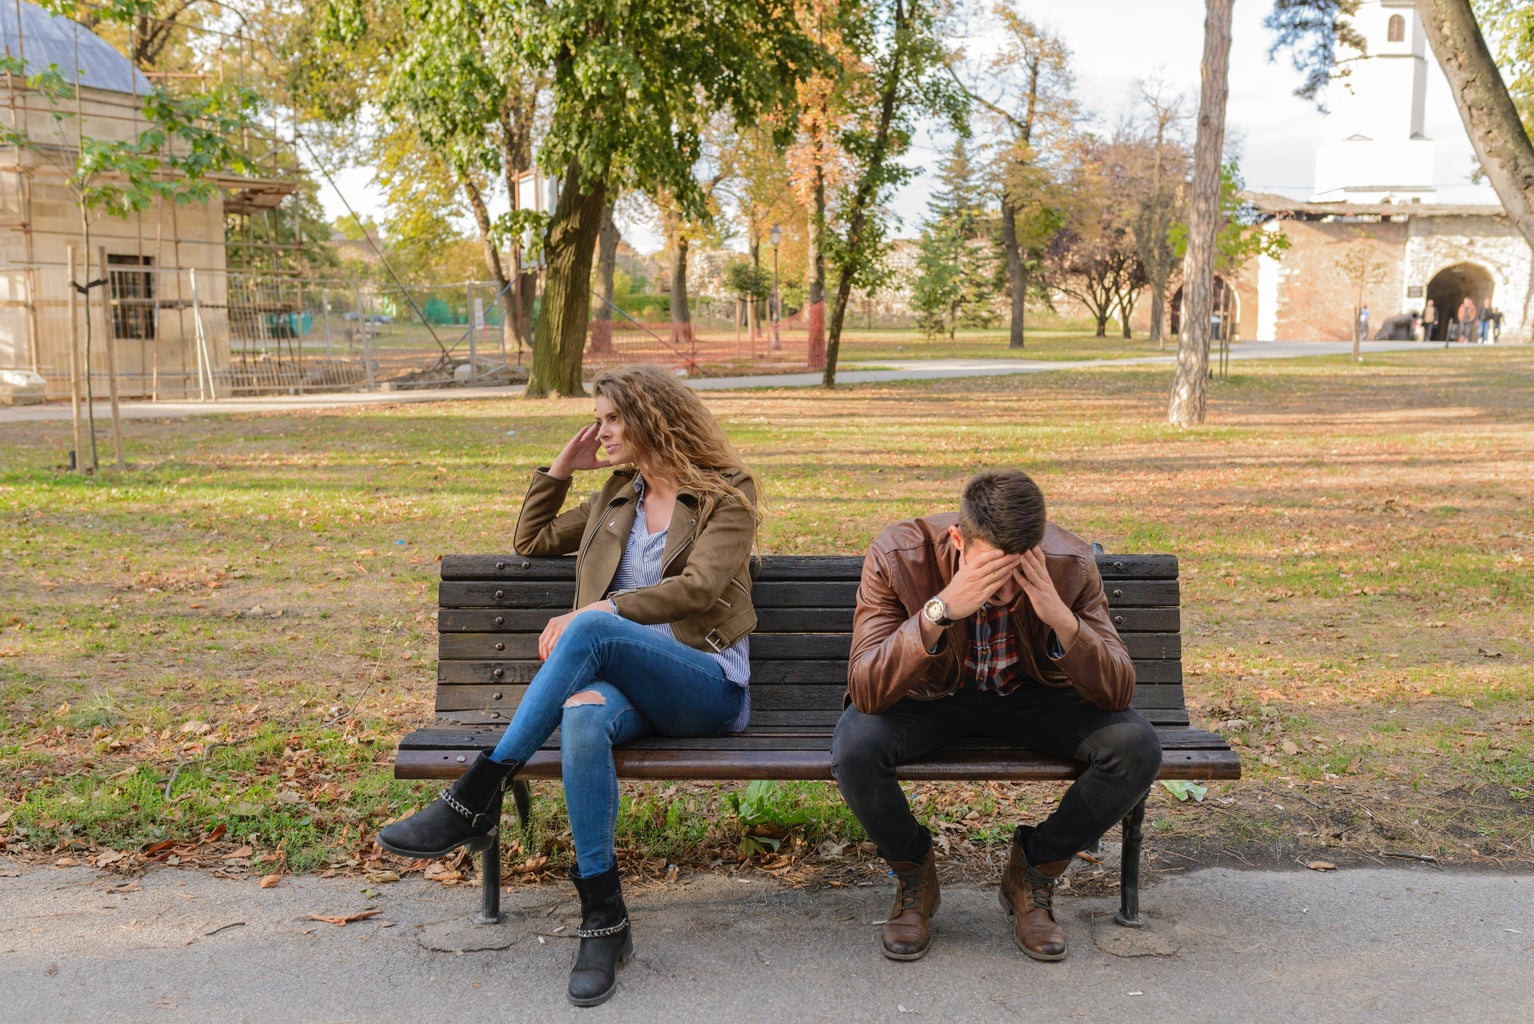 a man and a woman sit on a park bench looking frustrated